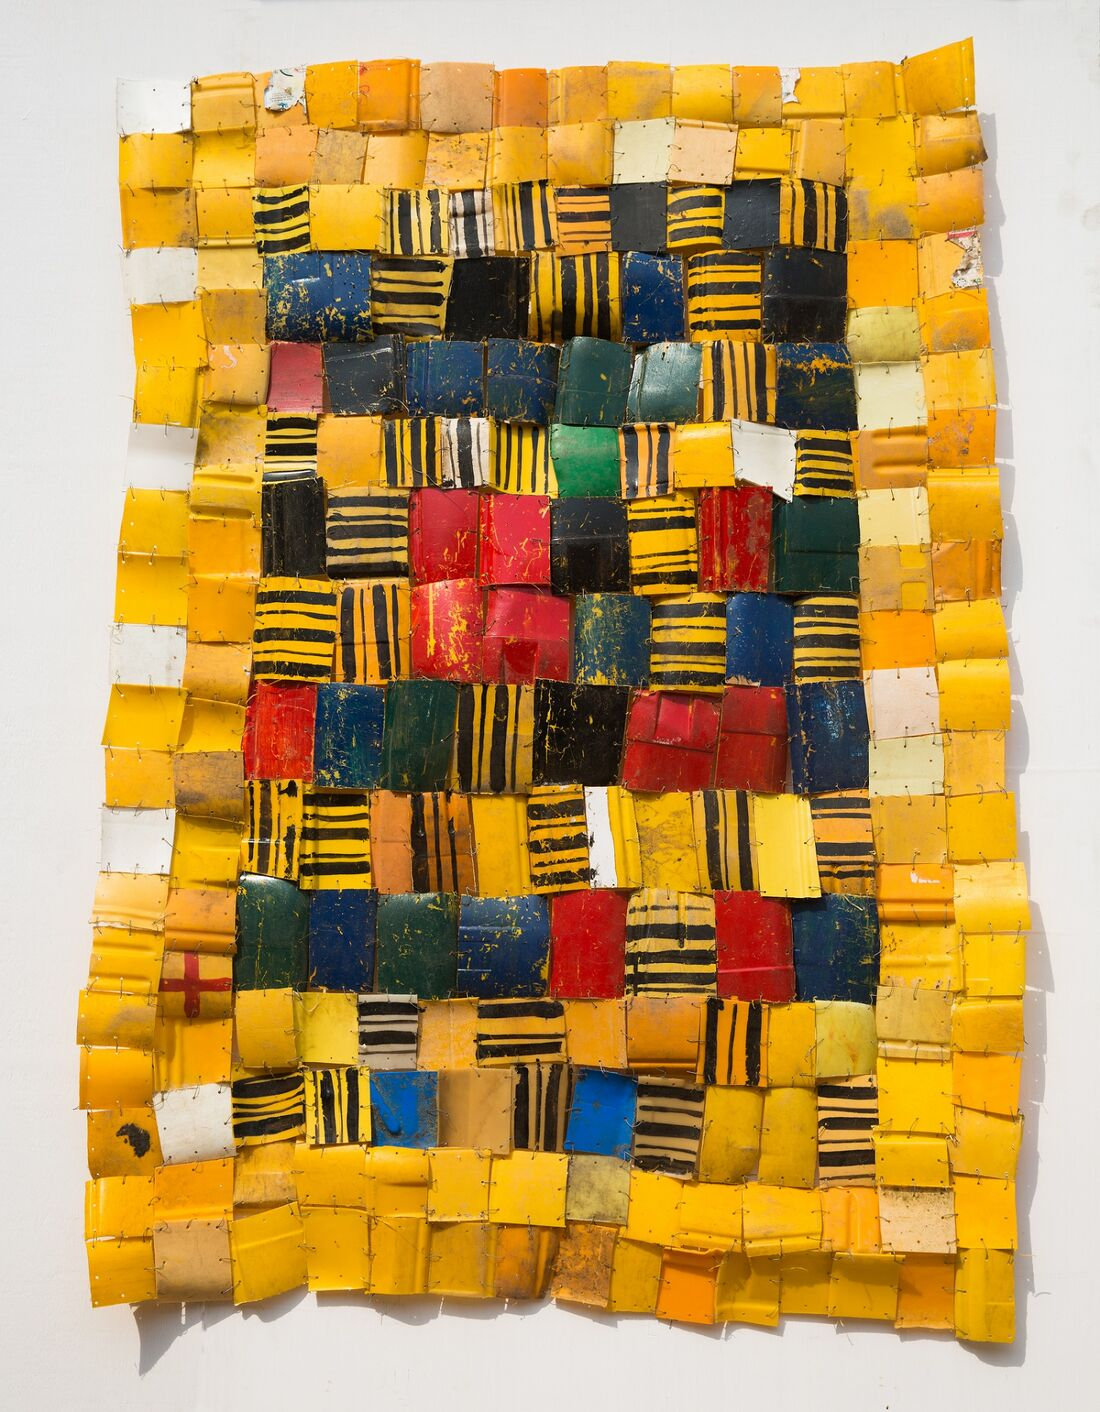 Serge Attukwei Clottey, Self Acquired; Courtesy of the artist and Gallery 1957.